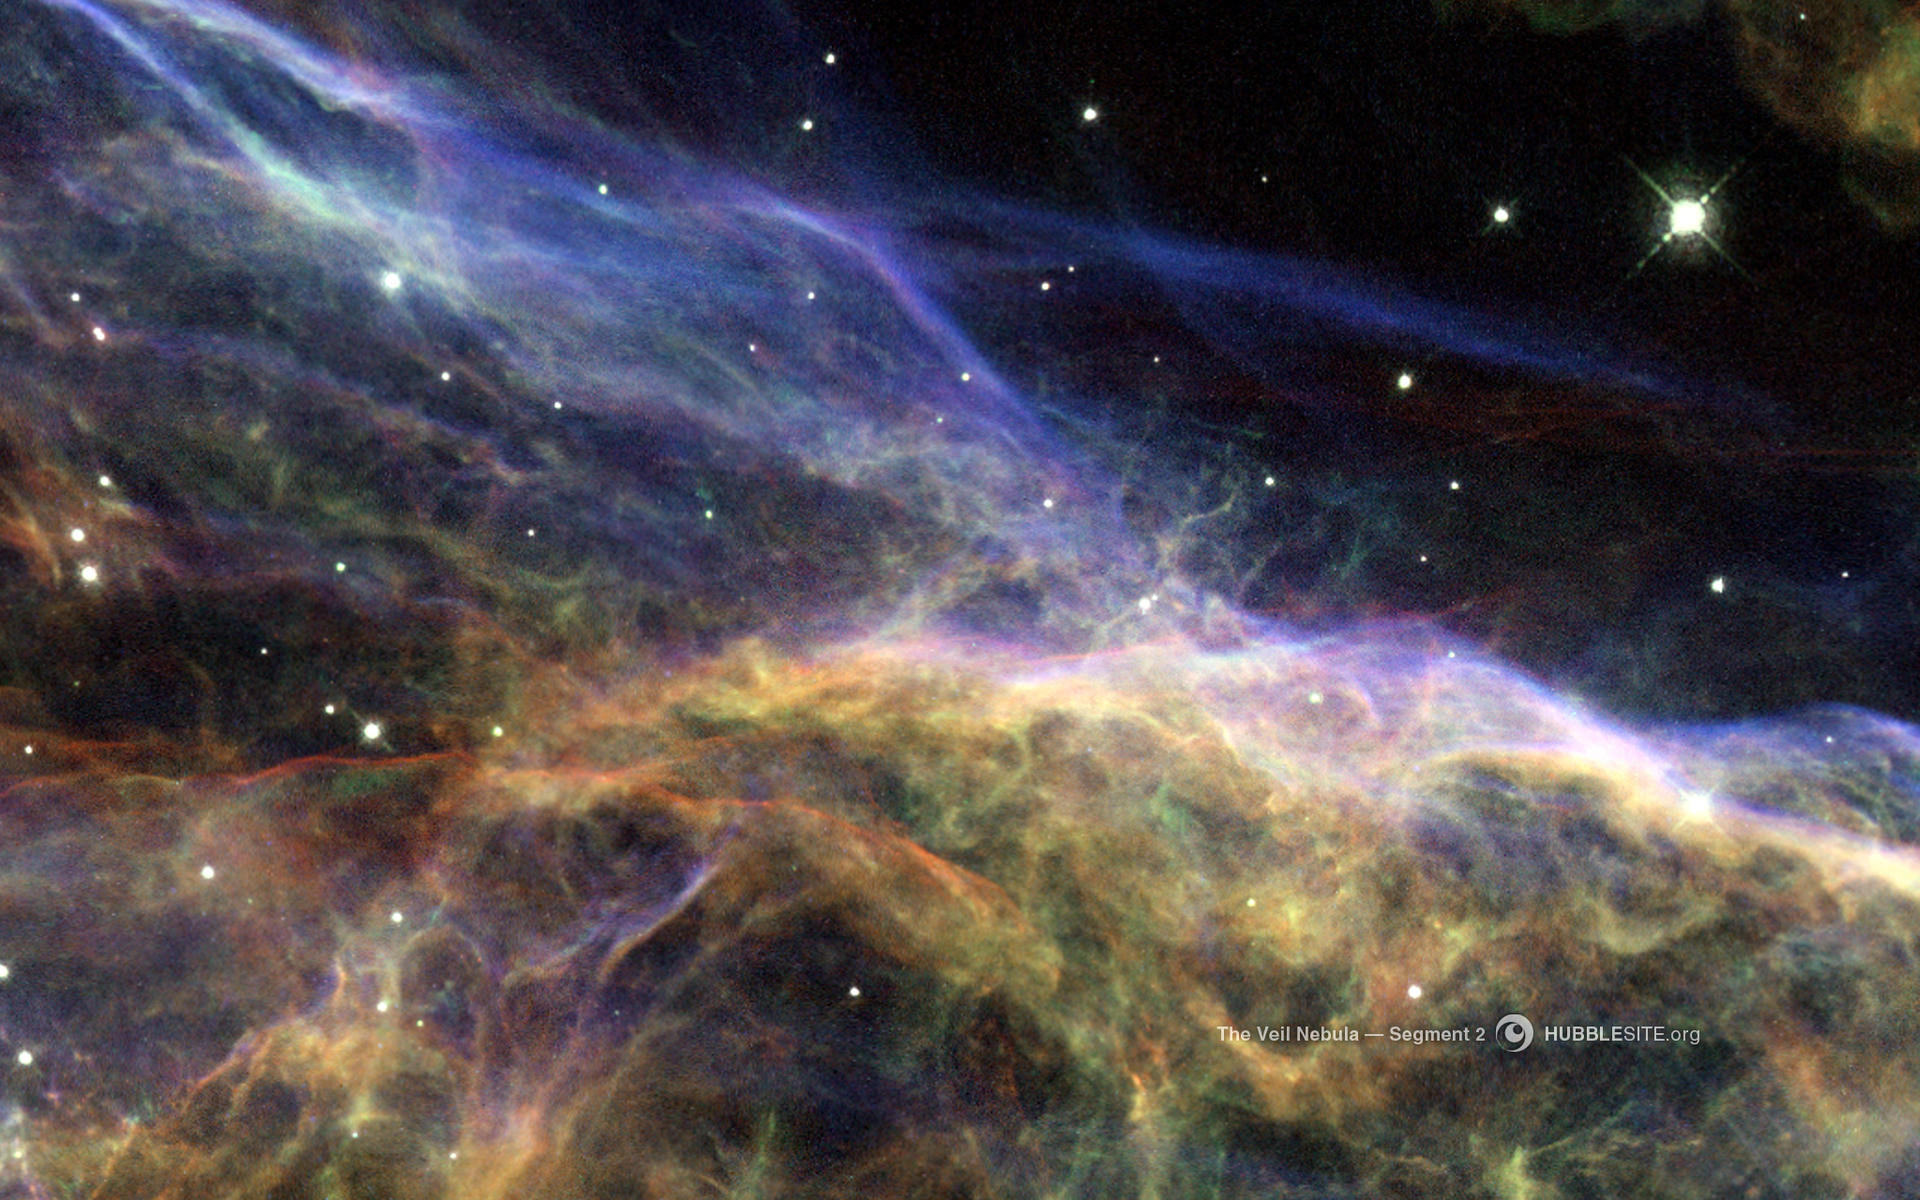 NASA images: Desktop wallpaper from outer space